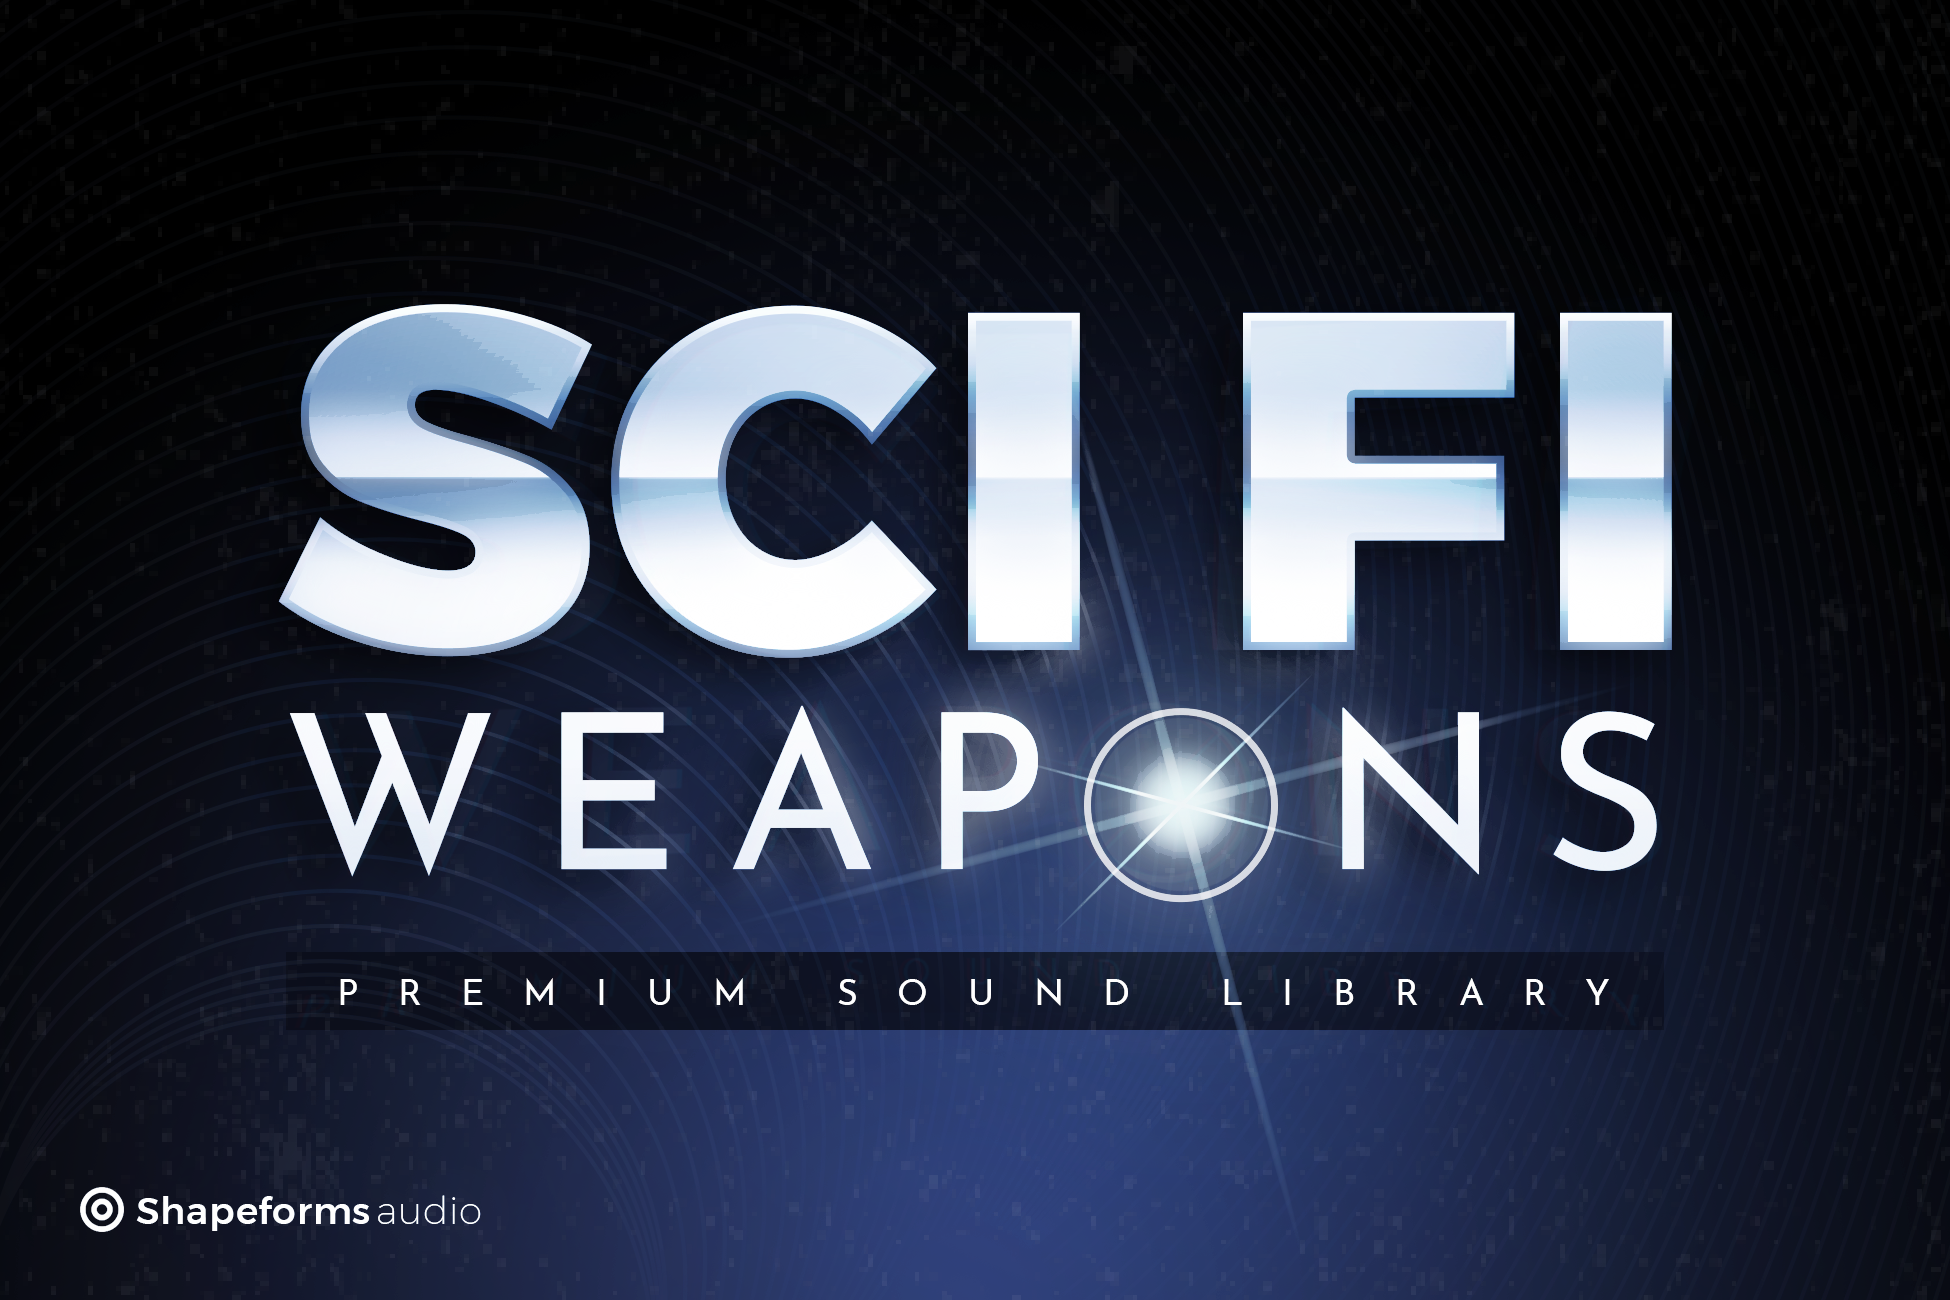 Shapeforms Audio Sci Fi Weapons